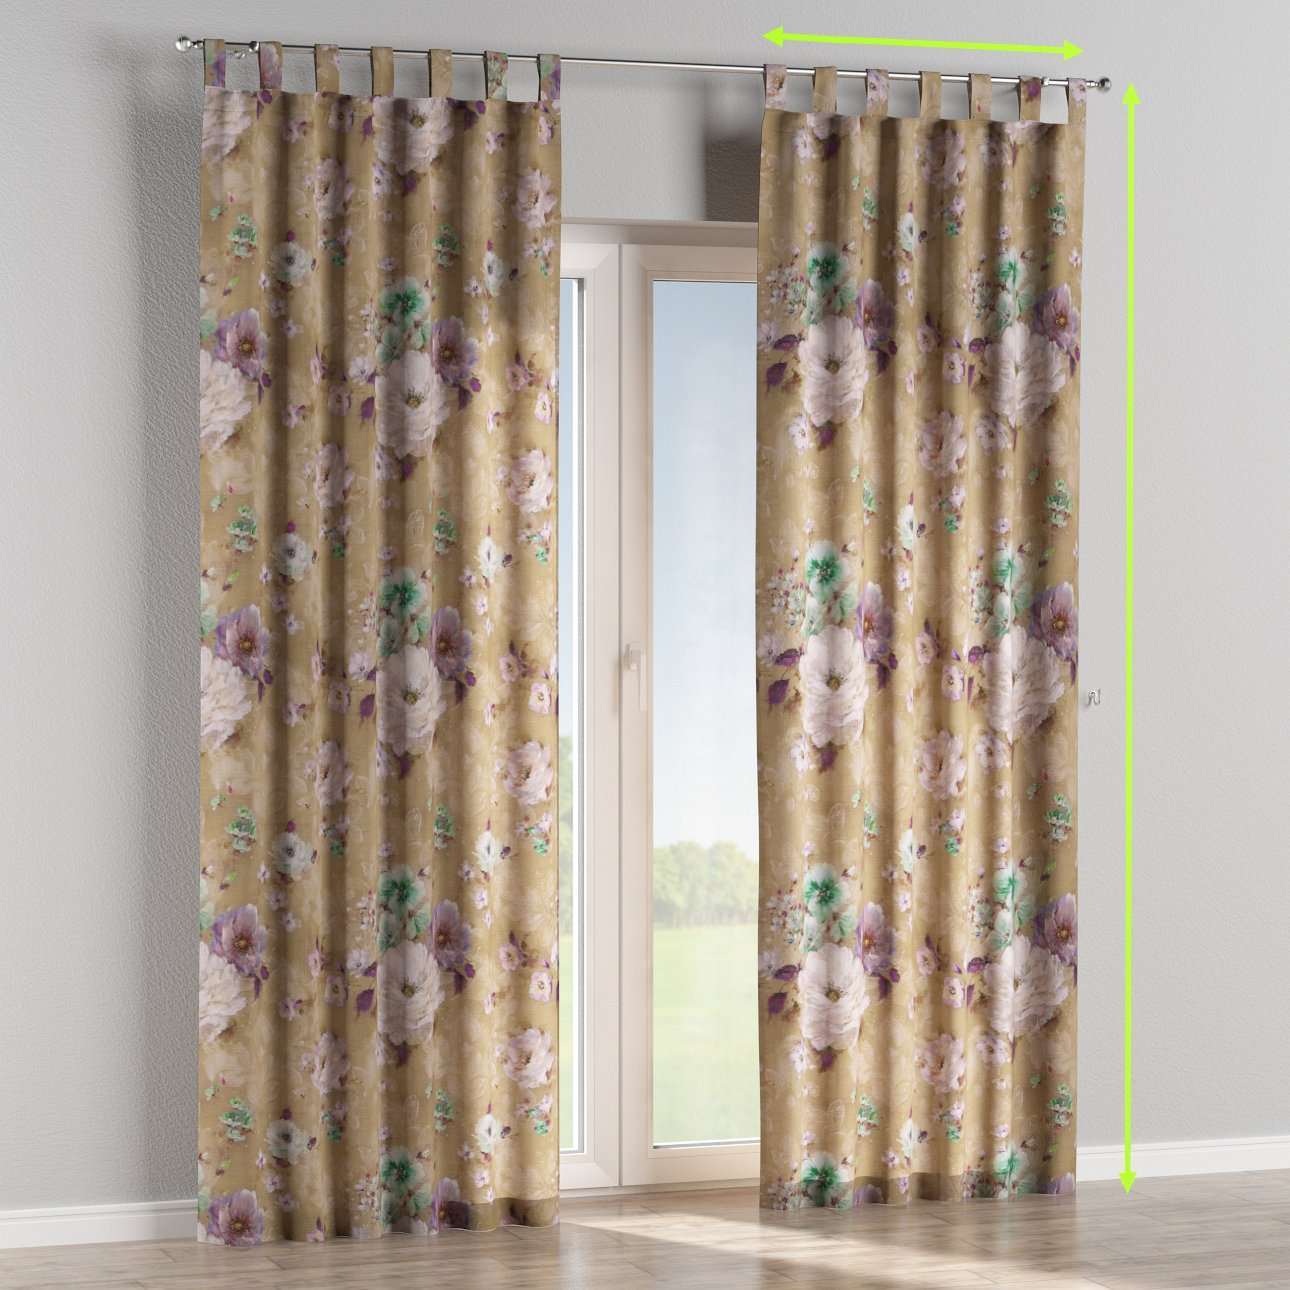 Tab top lined curtains in collection Monet, fabric: 137-82